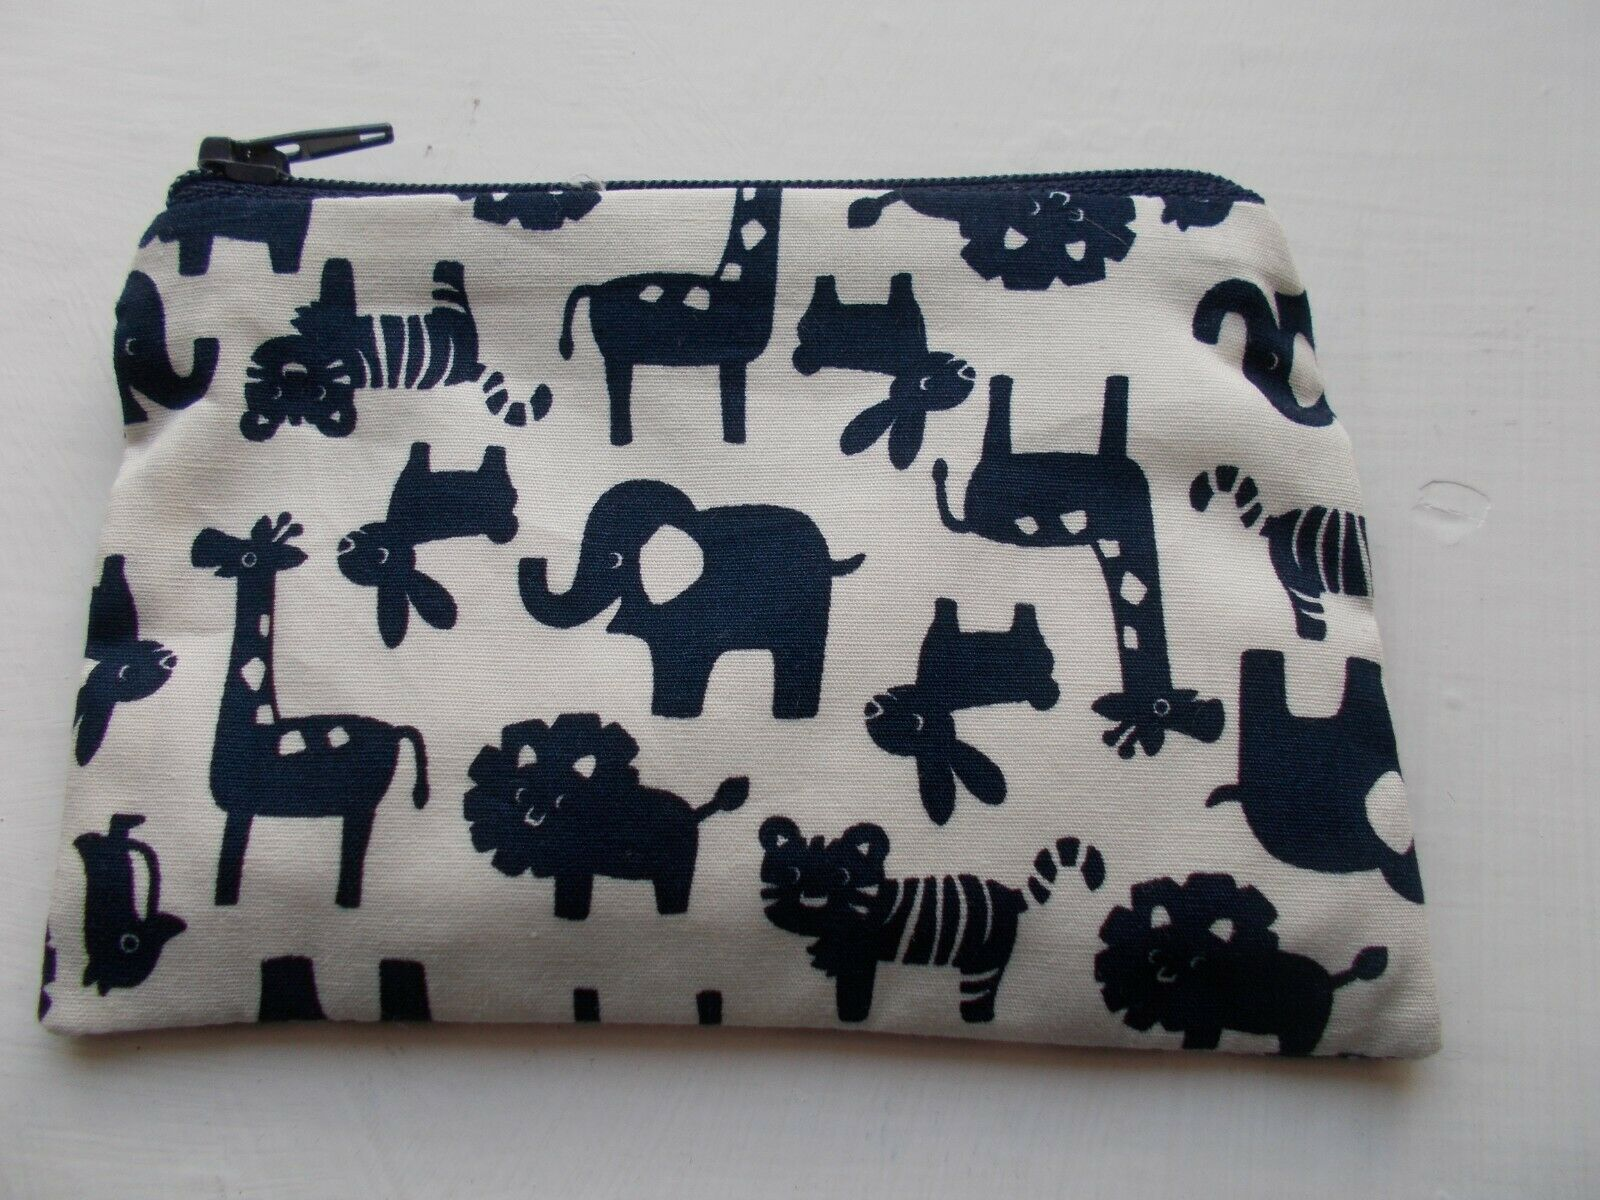 Handmade Zippy Cotton Coin Purse - ANIMALS in navy on white - approx 13x8/9cm